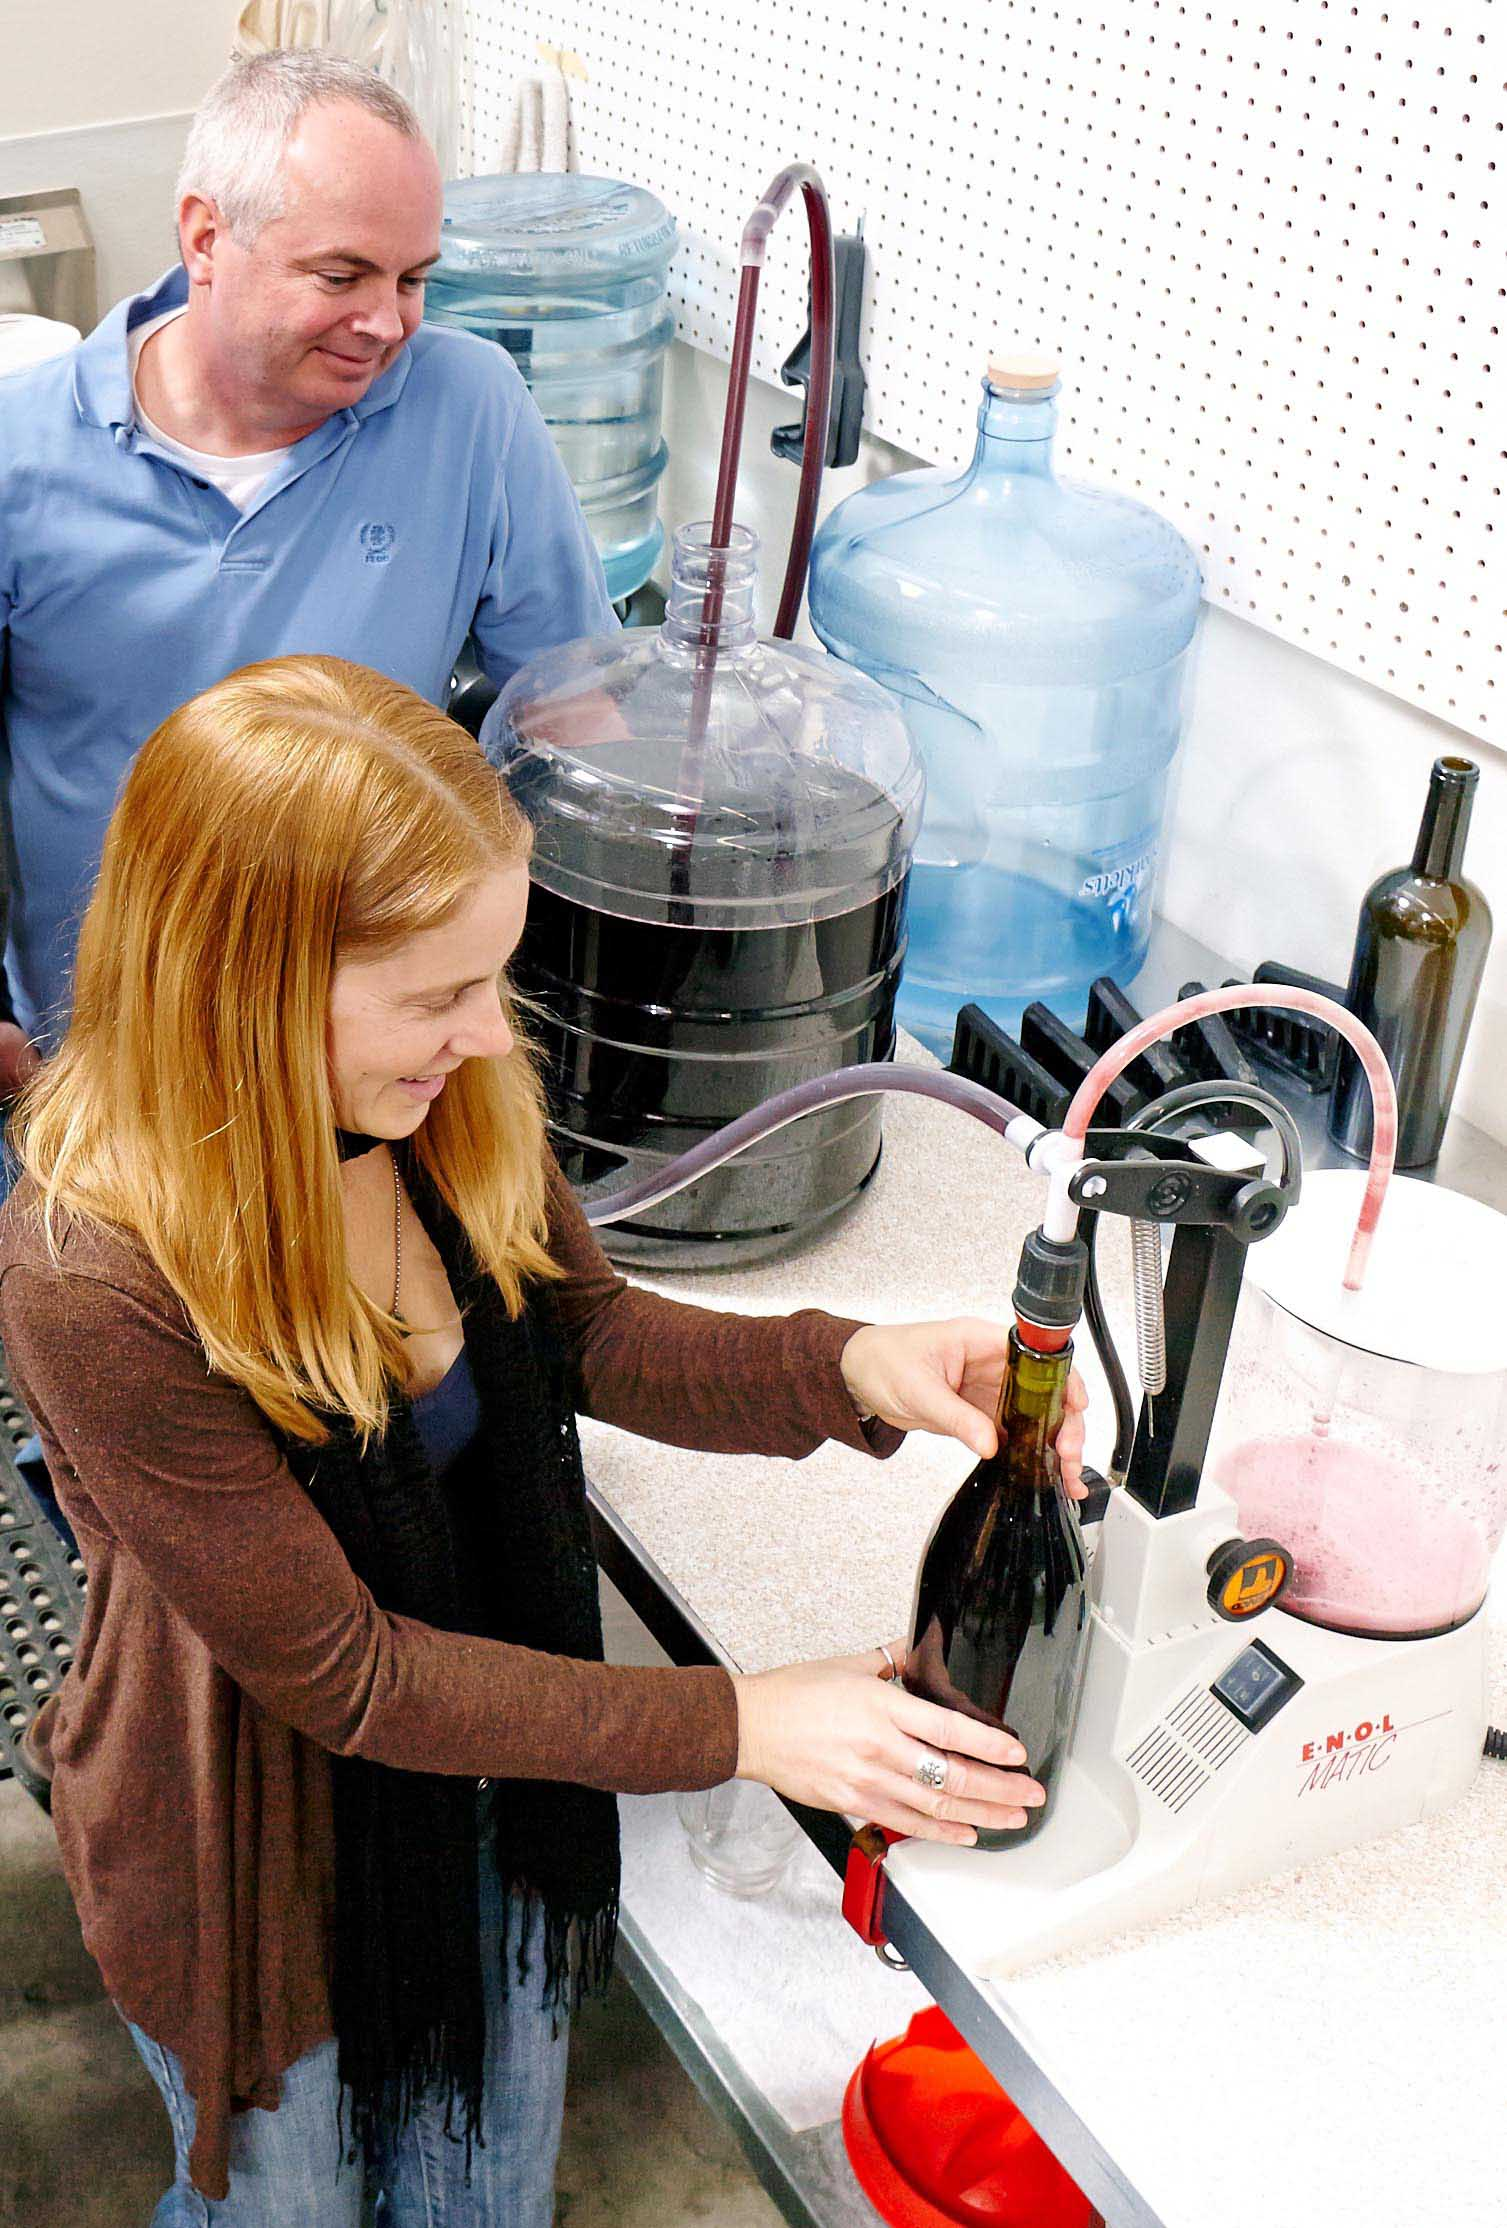 bottling-wine-small.jpg